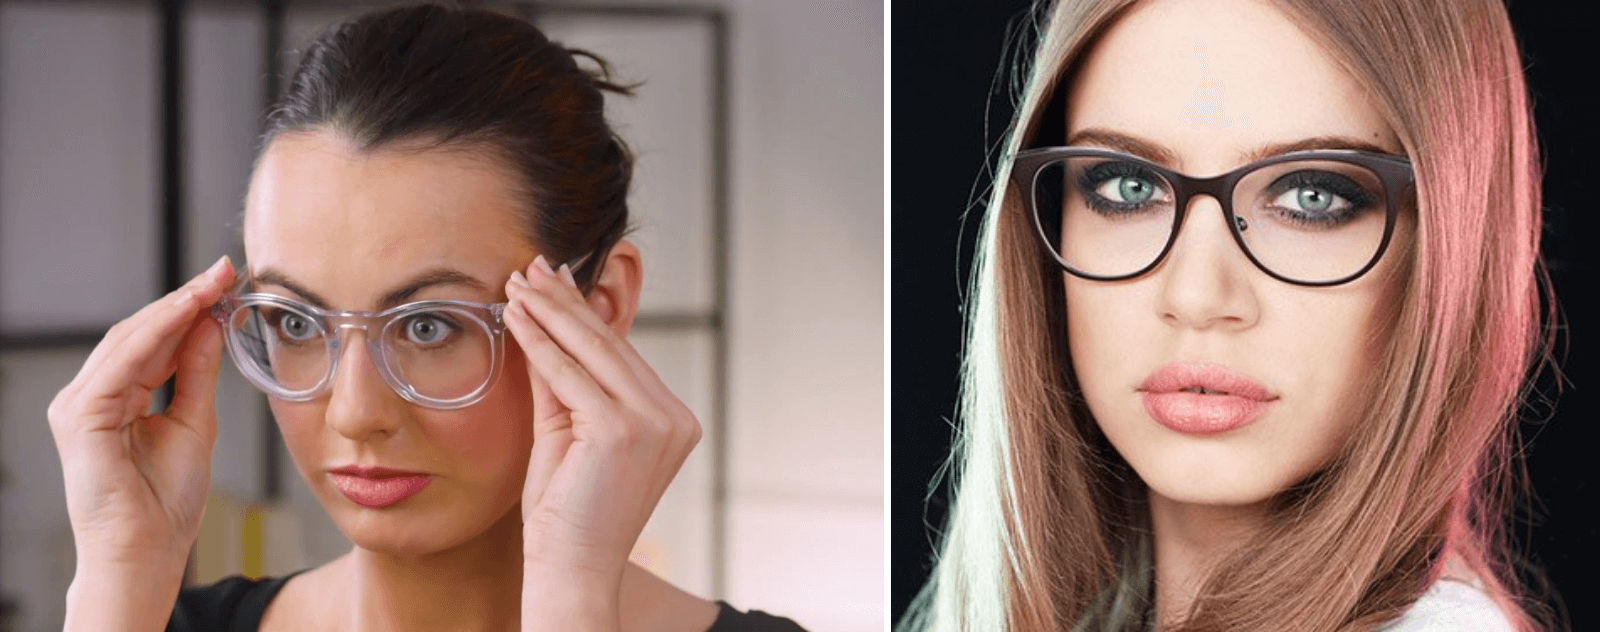 Maquillage pour Myopes